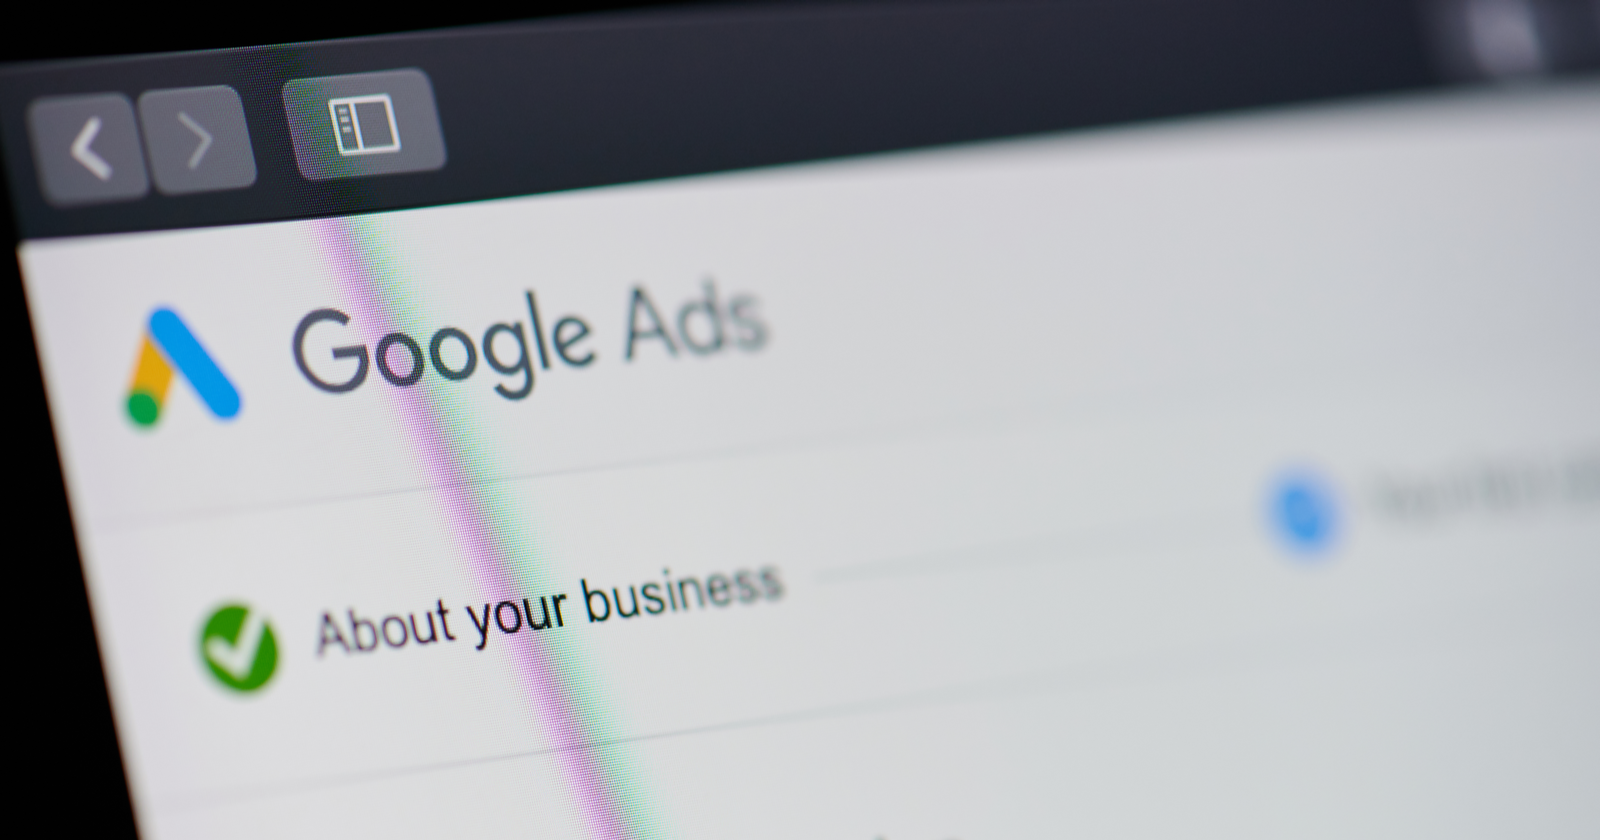 8 simple google ads tips that will make you more money 5ee1f8ed4db2e